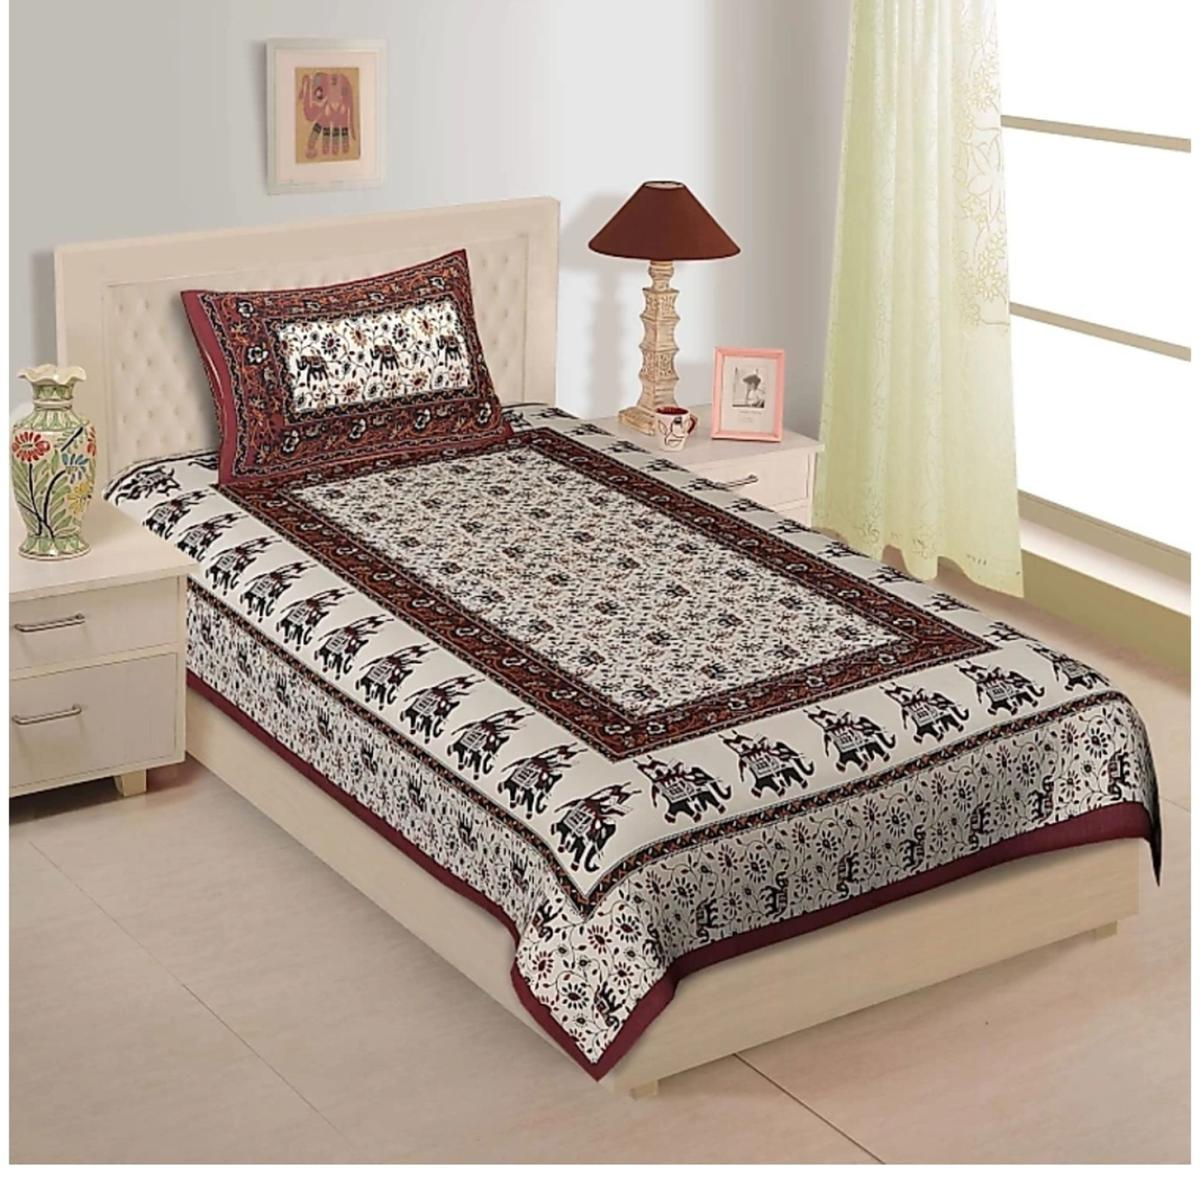 Pooja Fashion - Multicolor Colored Printed Single Cotton Bedsheet With 1 Pillow Cover